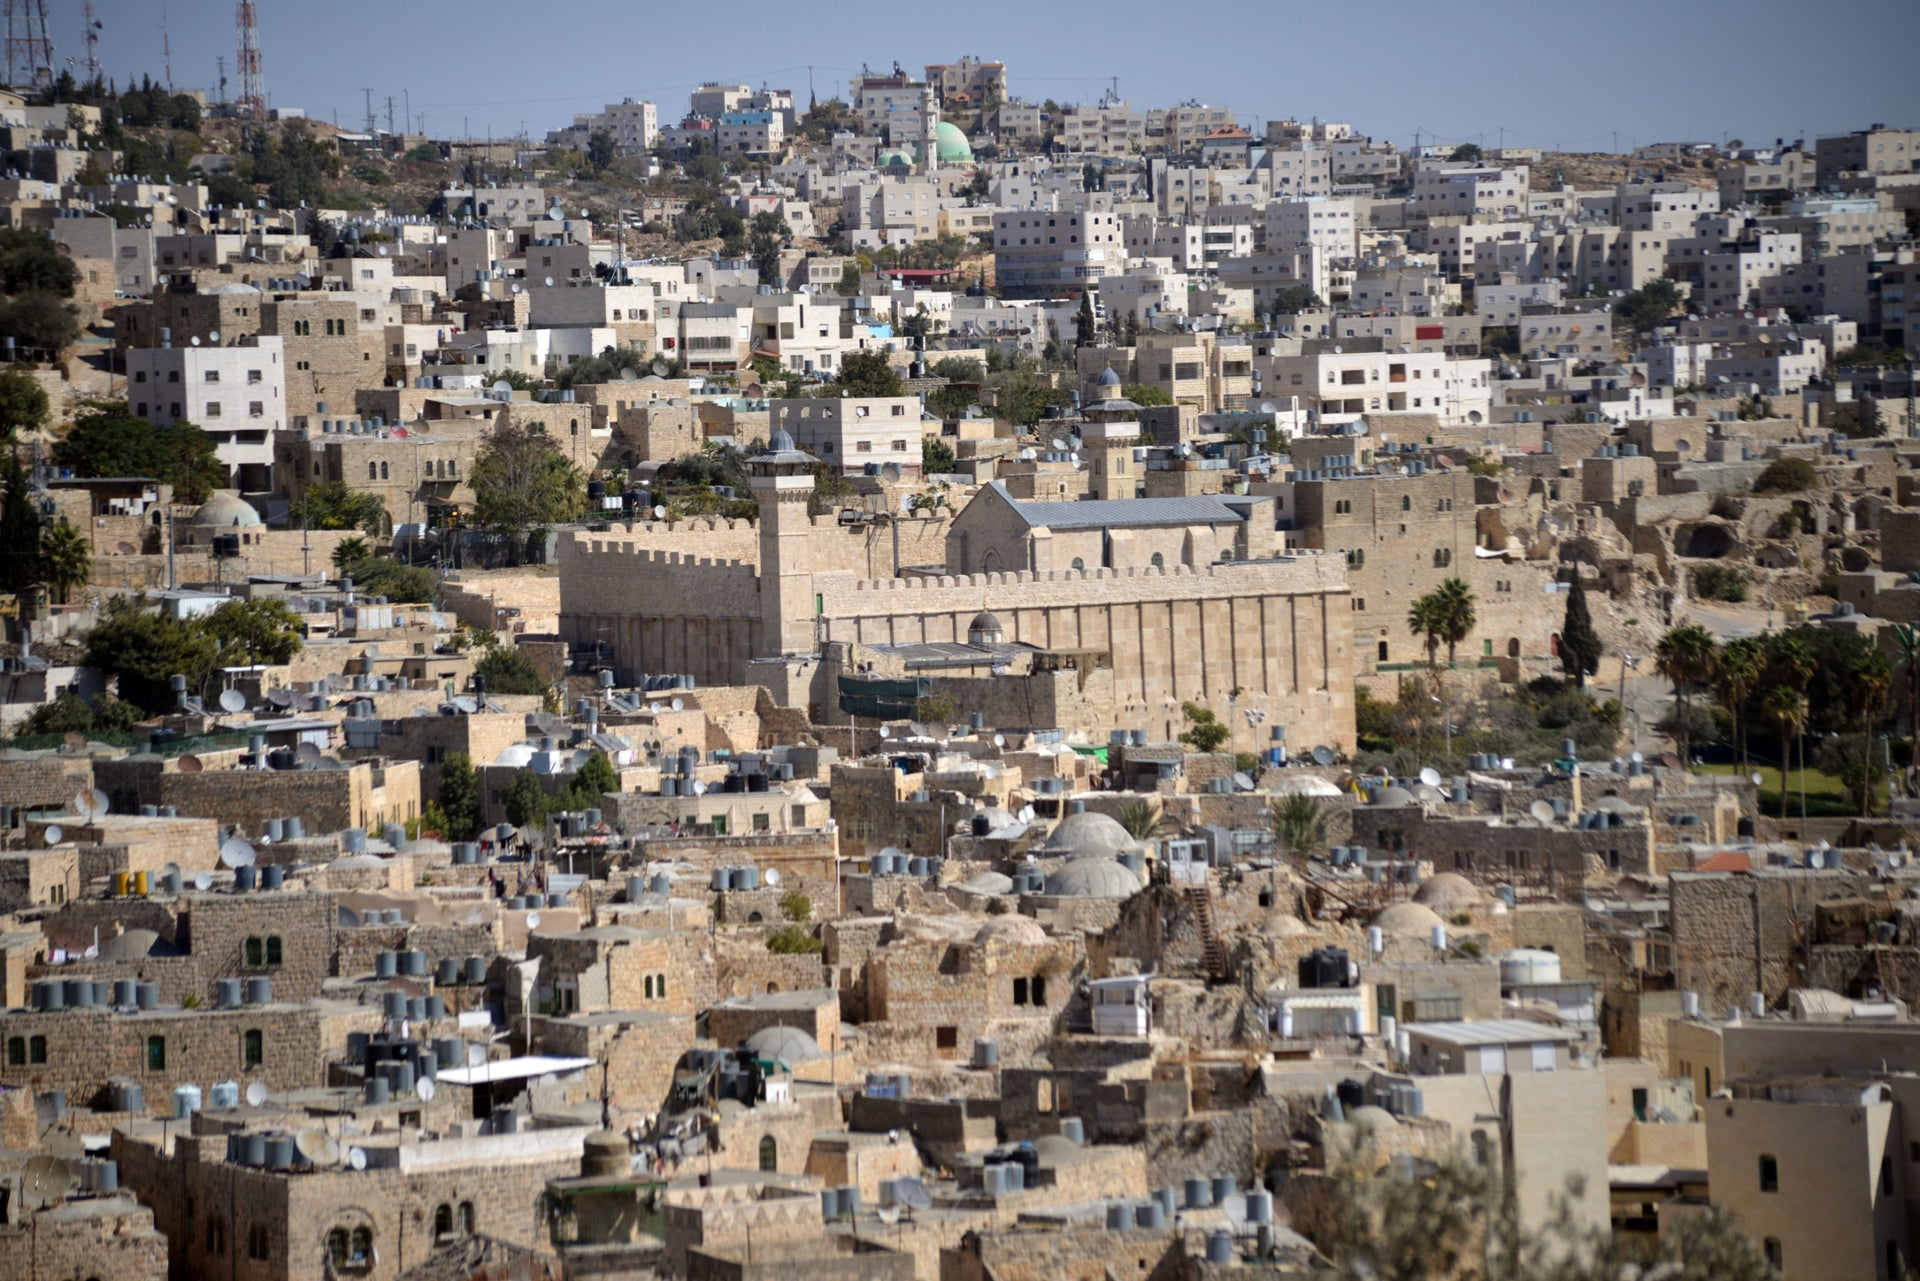 Hebron, the largest city in the West Bank. If the future of the West Bank is as a series of city-states, Hebron feels the best prepared.